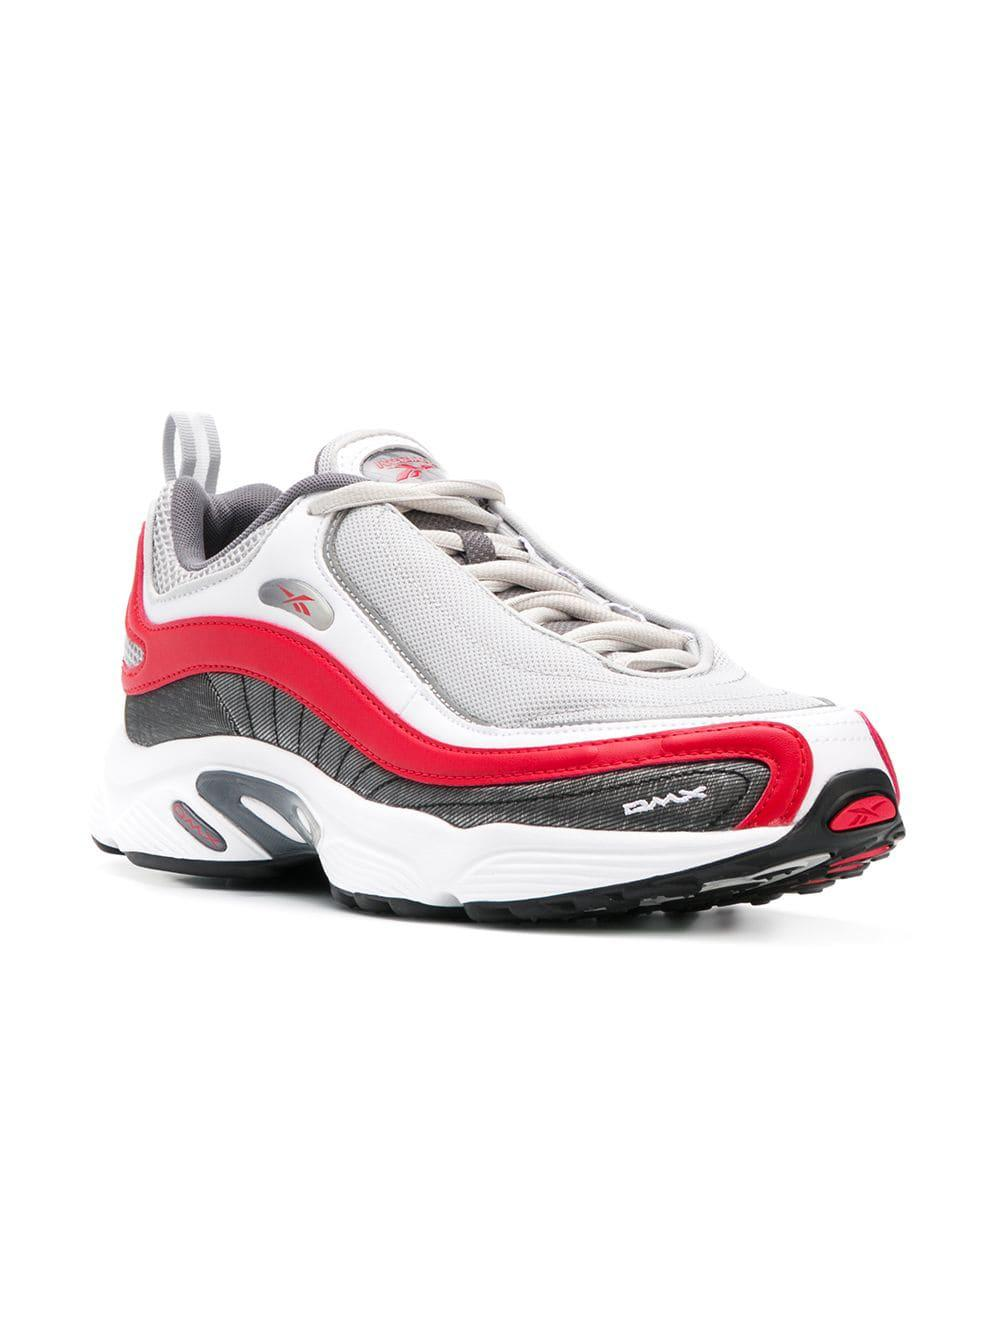 Lyst - Reebok Daytona Dmx Sneakers in Gray for Men 4dd3cab00